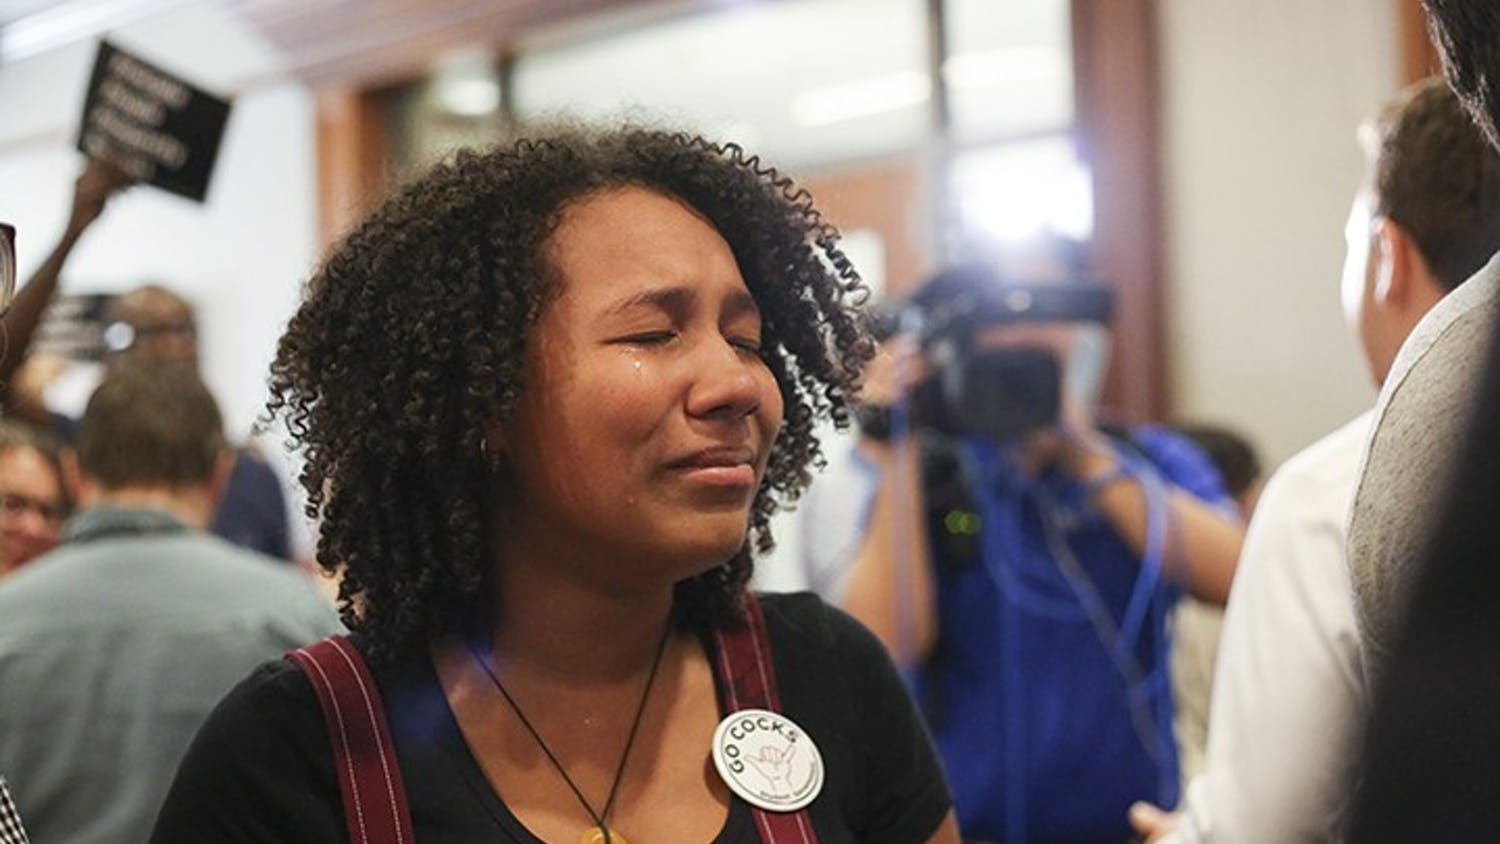 Second-year psychology student Deanna Smith cries in reaction to the announcement of the selection of Gen. Robert Caslen as the next president of USC.